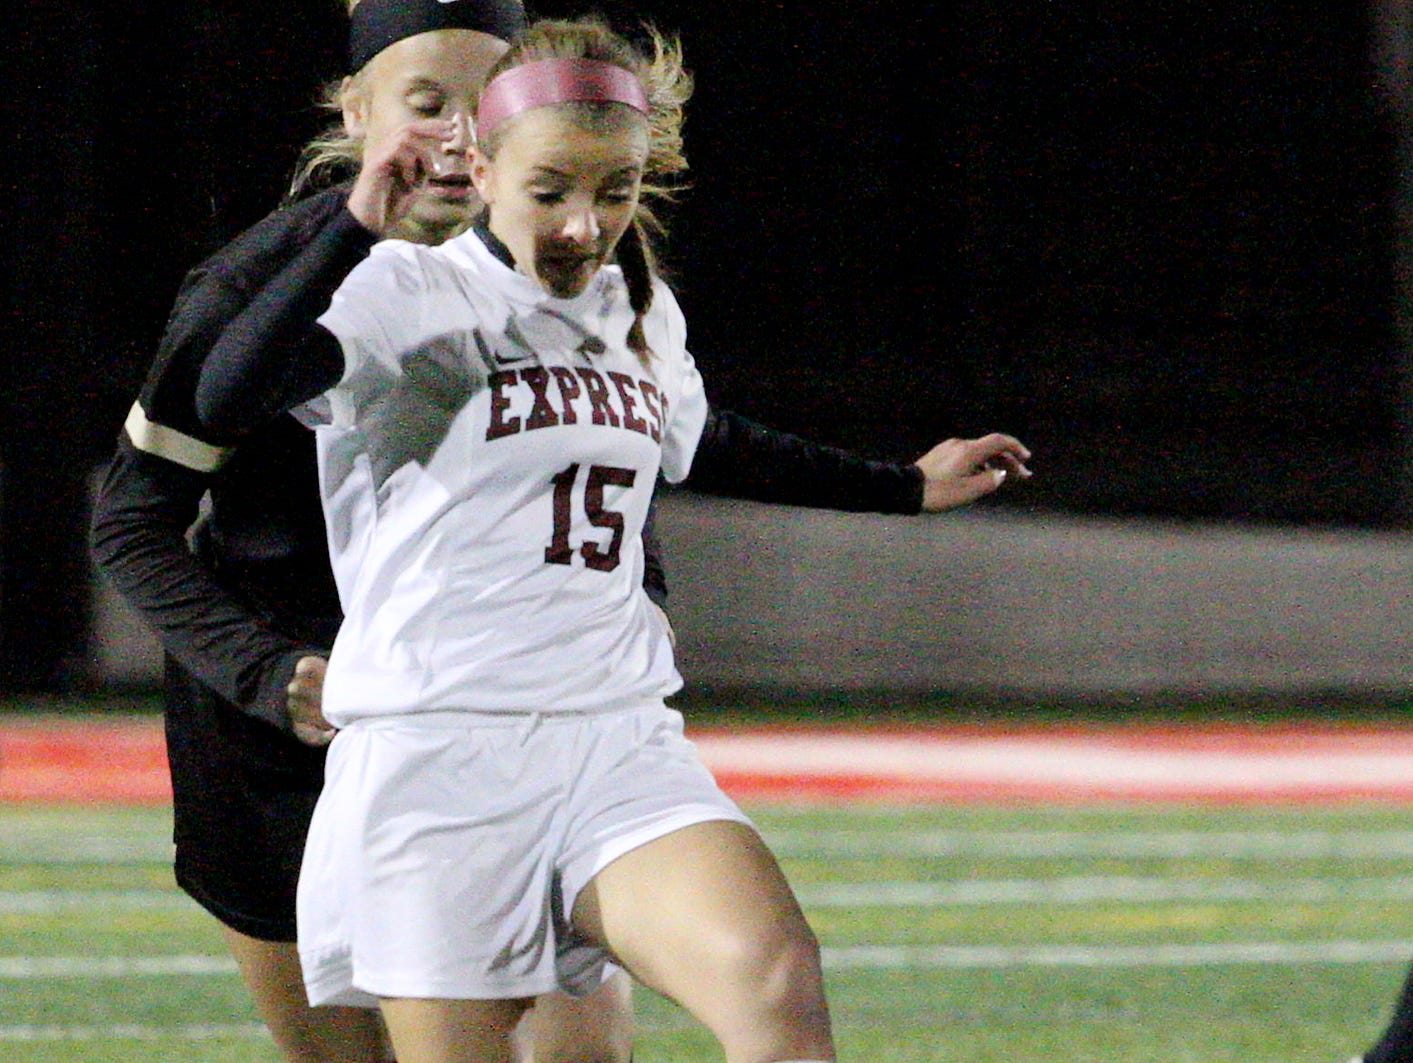 Elmira's Rose Ruland drives the soccer ball down the field Friday night at Waverly Memorial Stadium during the Section 4 finals.